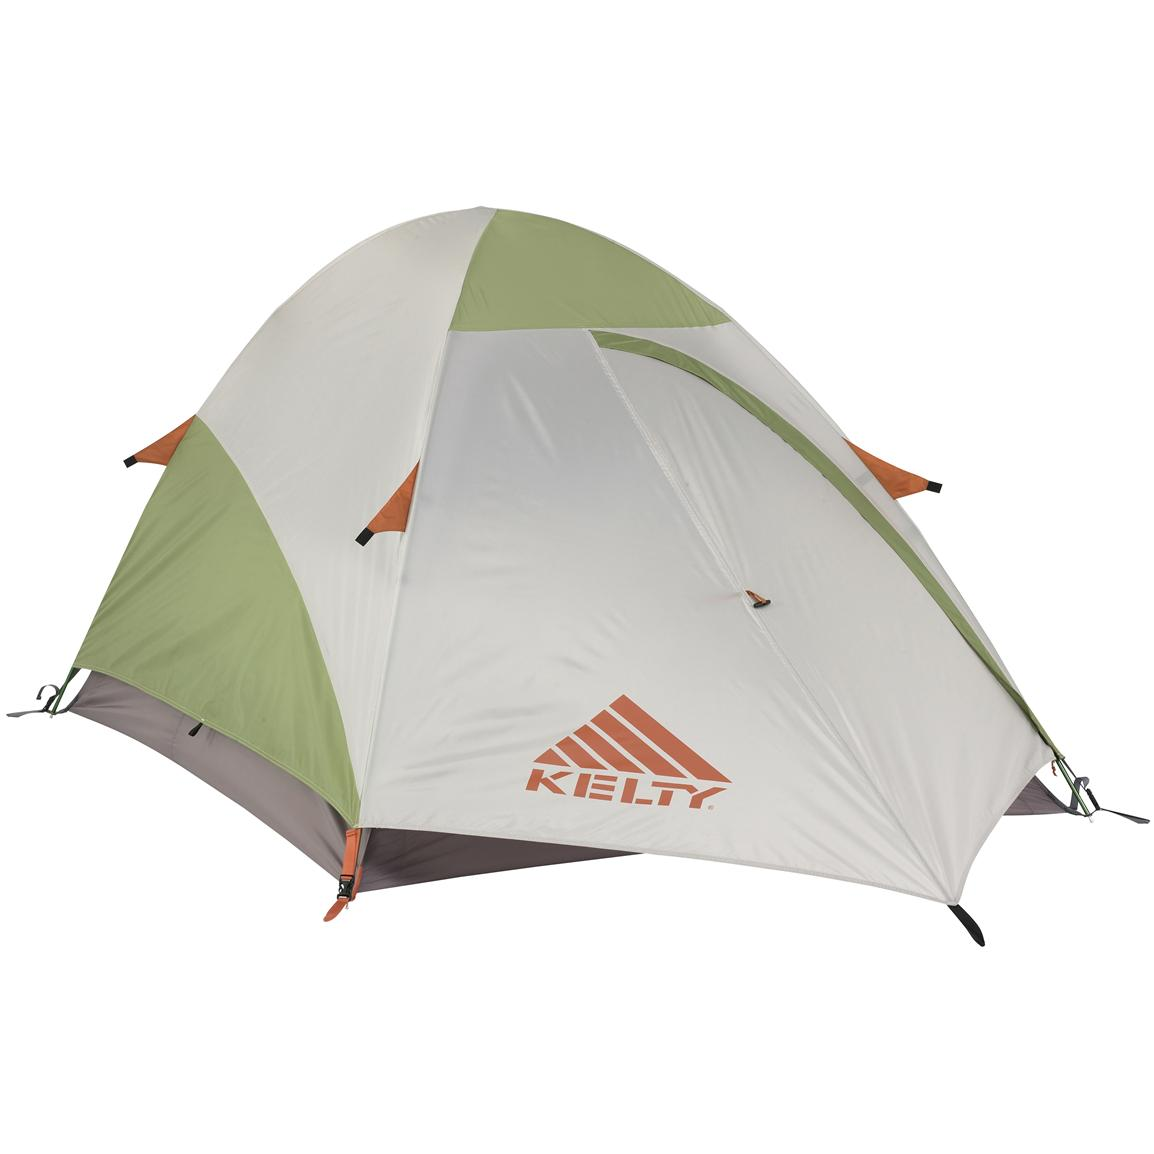 Kelty® Grand Mesa 2-person Tent, with Rainfly